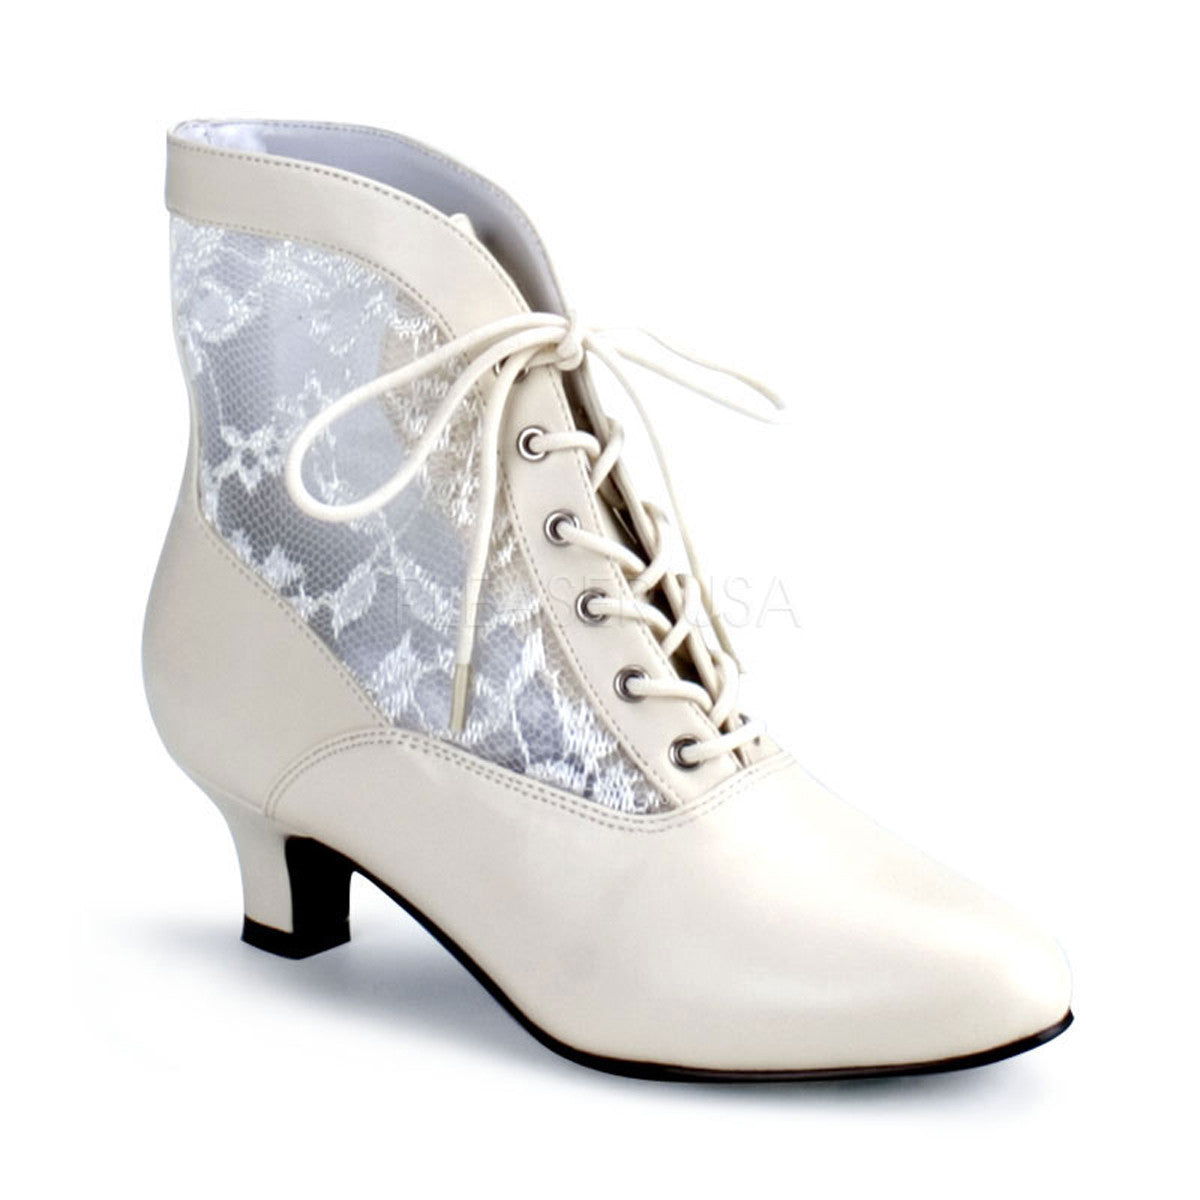 Womens 2 Inch Heels Ivory Lace Victorian Booties Halloween Costume Accessory